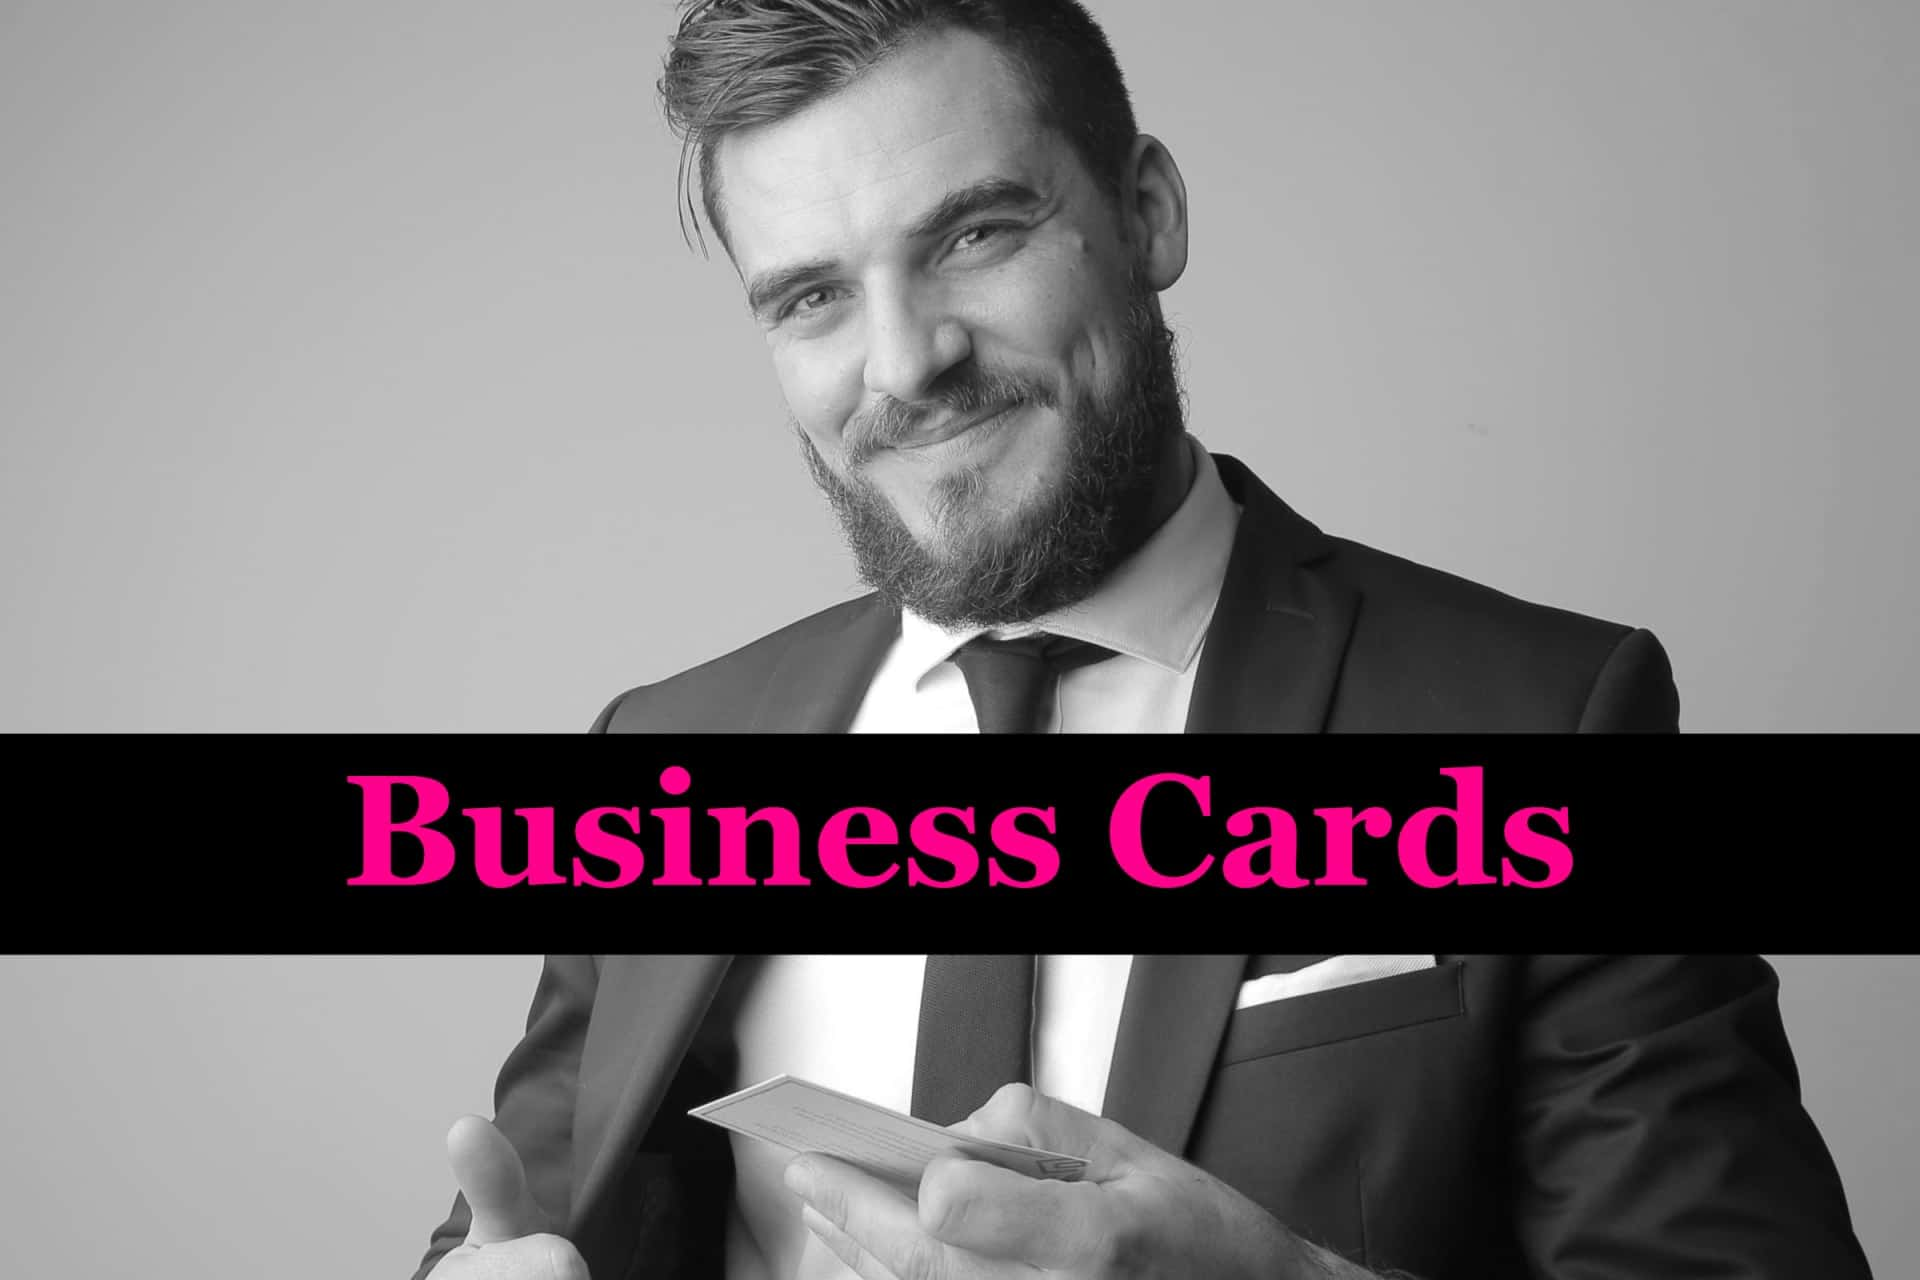 Smiling business man holding his business cards